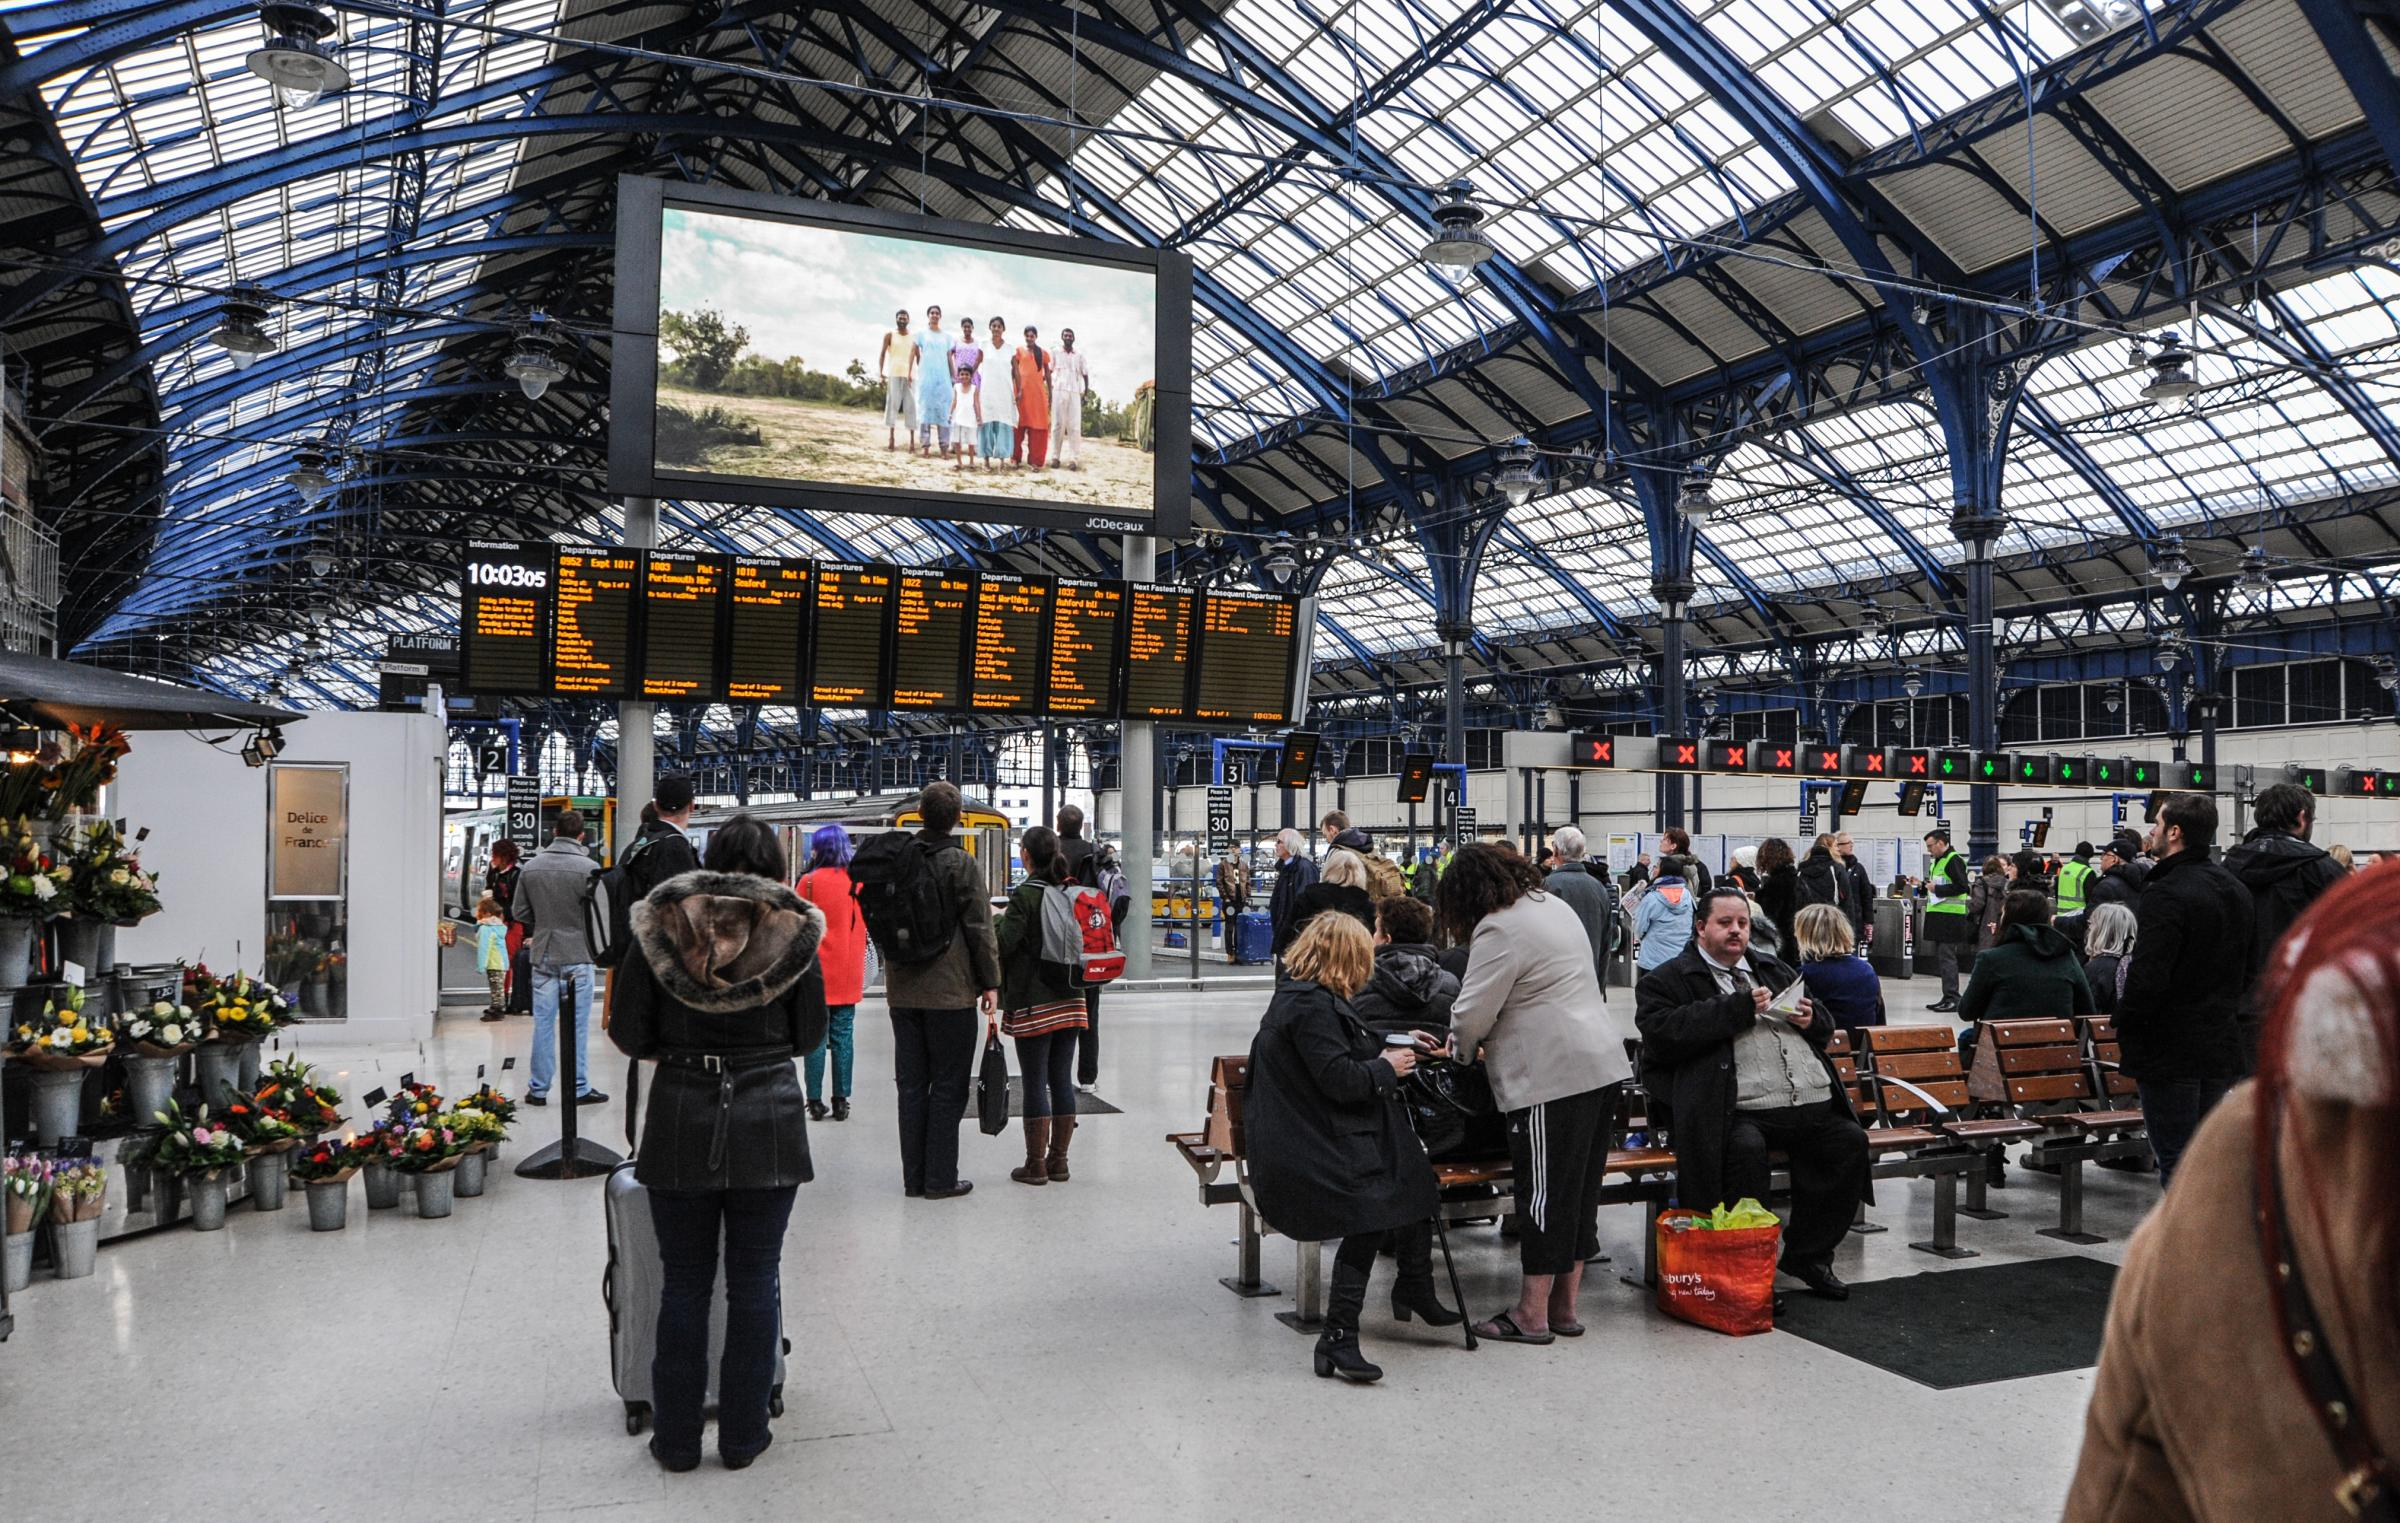 Piano at Brighton station could be key to raising commuter spirits